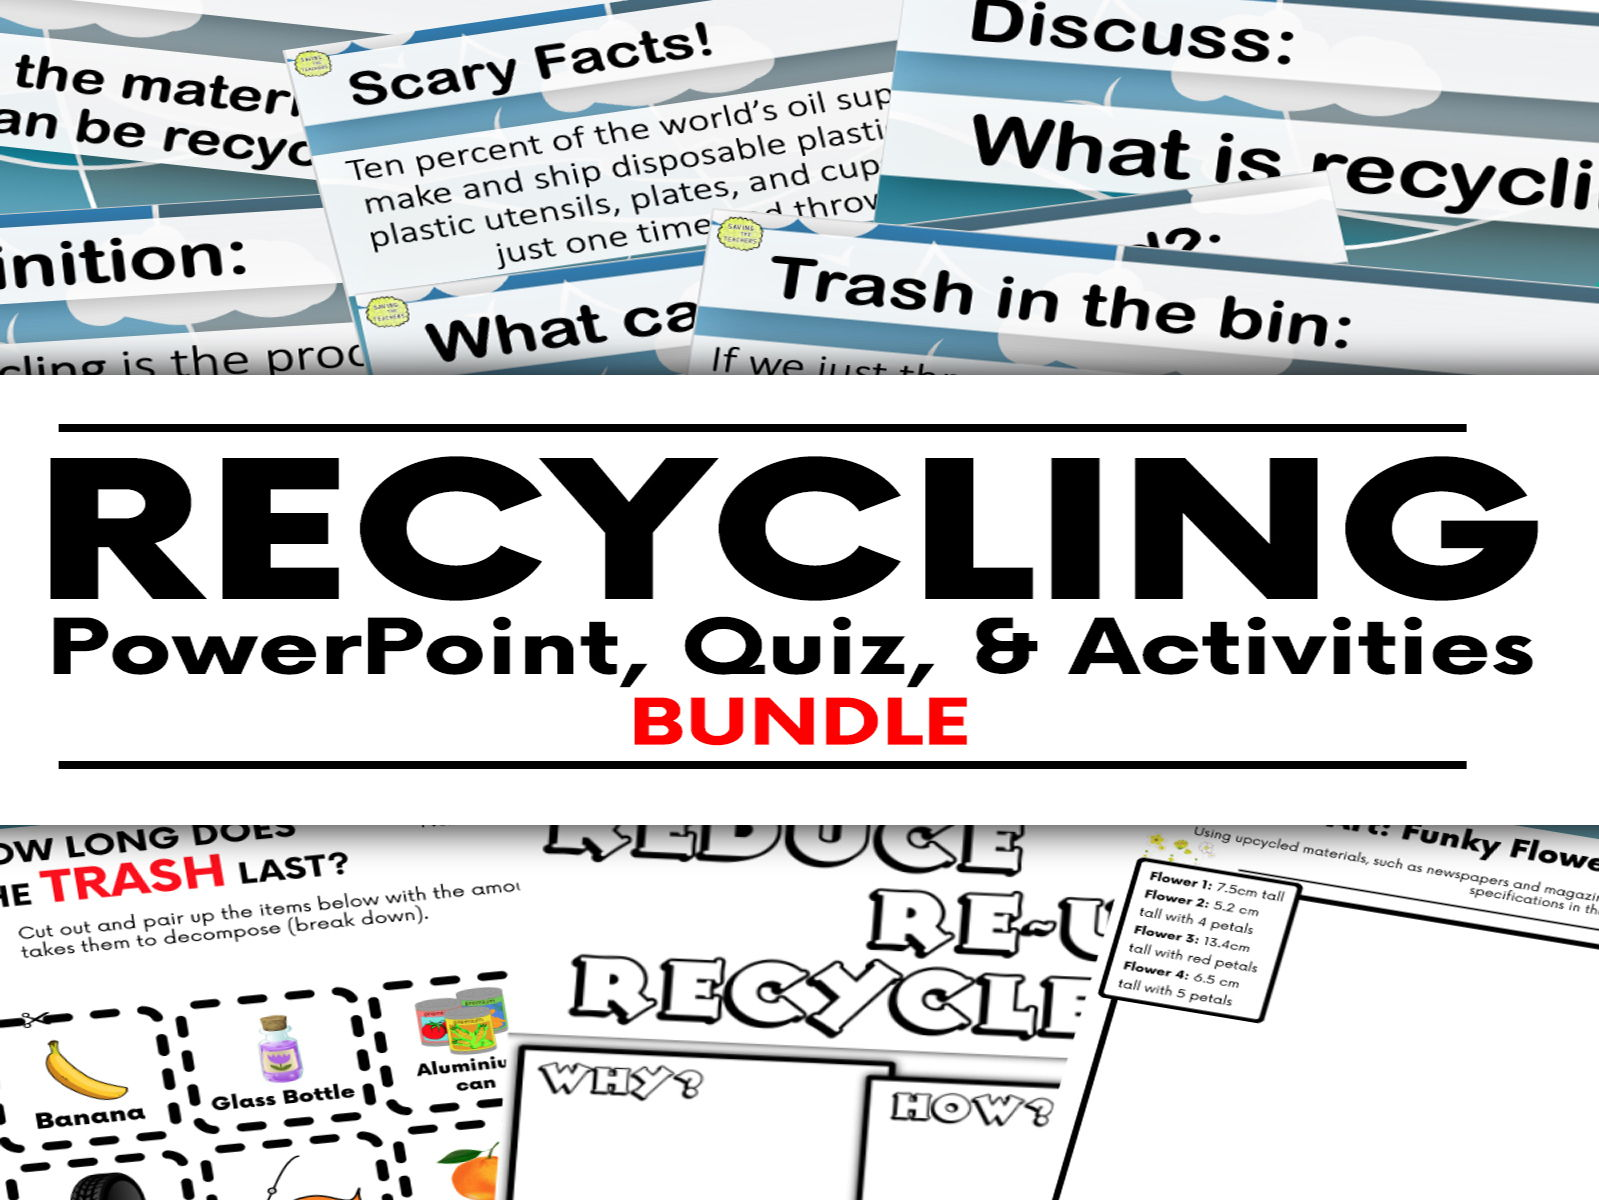 Recycling PowerPoint, Quiz, and Activities Bundle